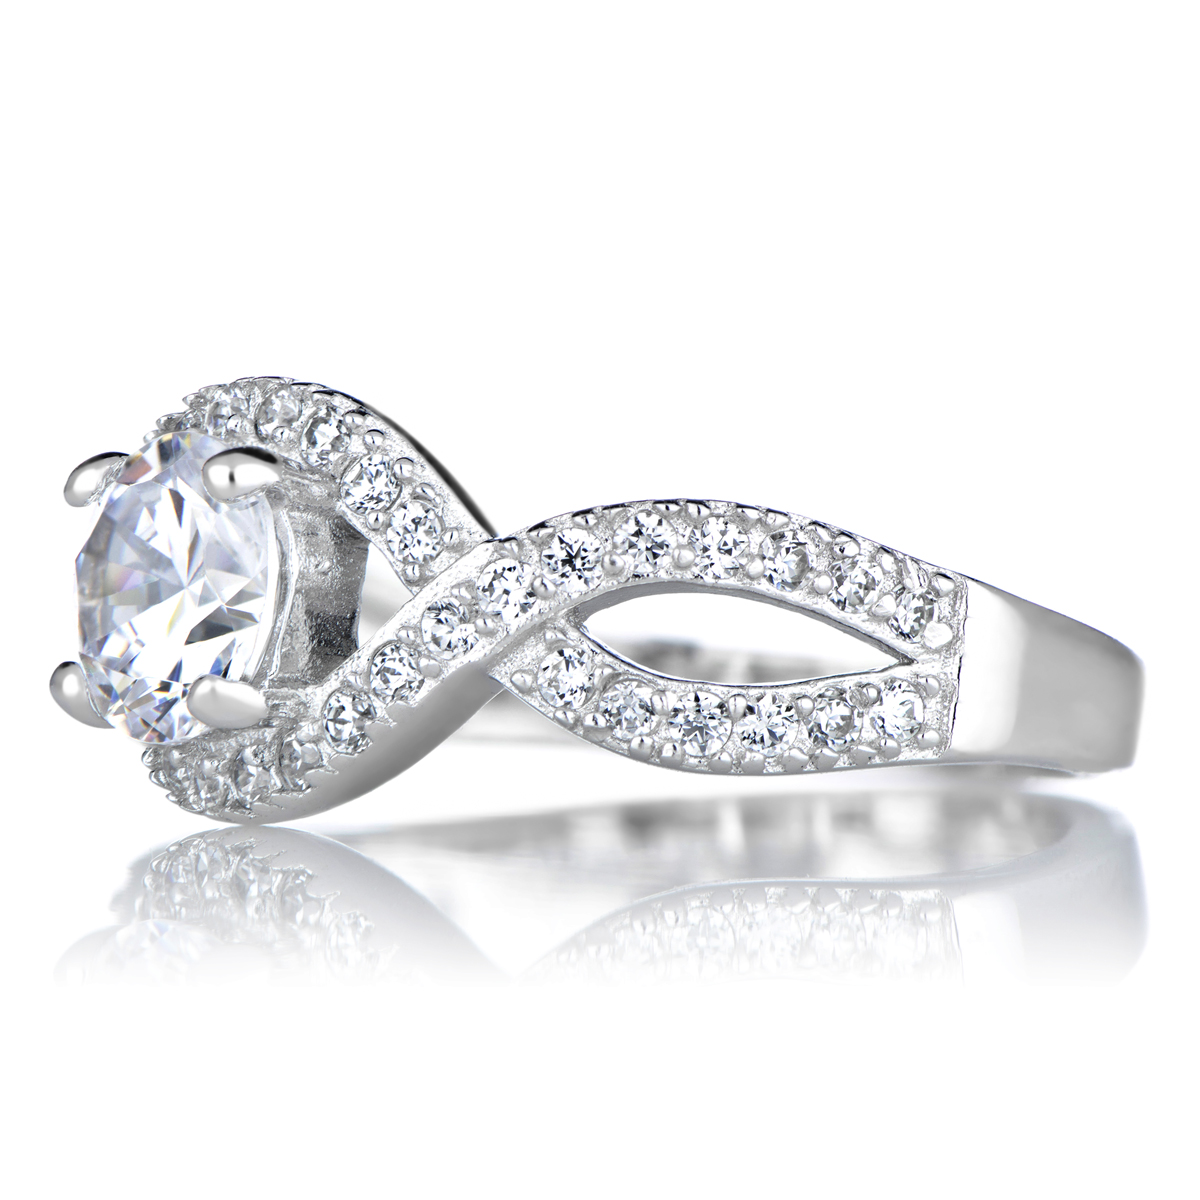 Dorothea s Round Cut Twisted Band CZ Engagement Ring